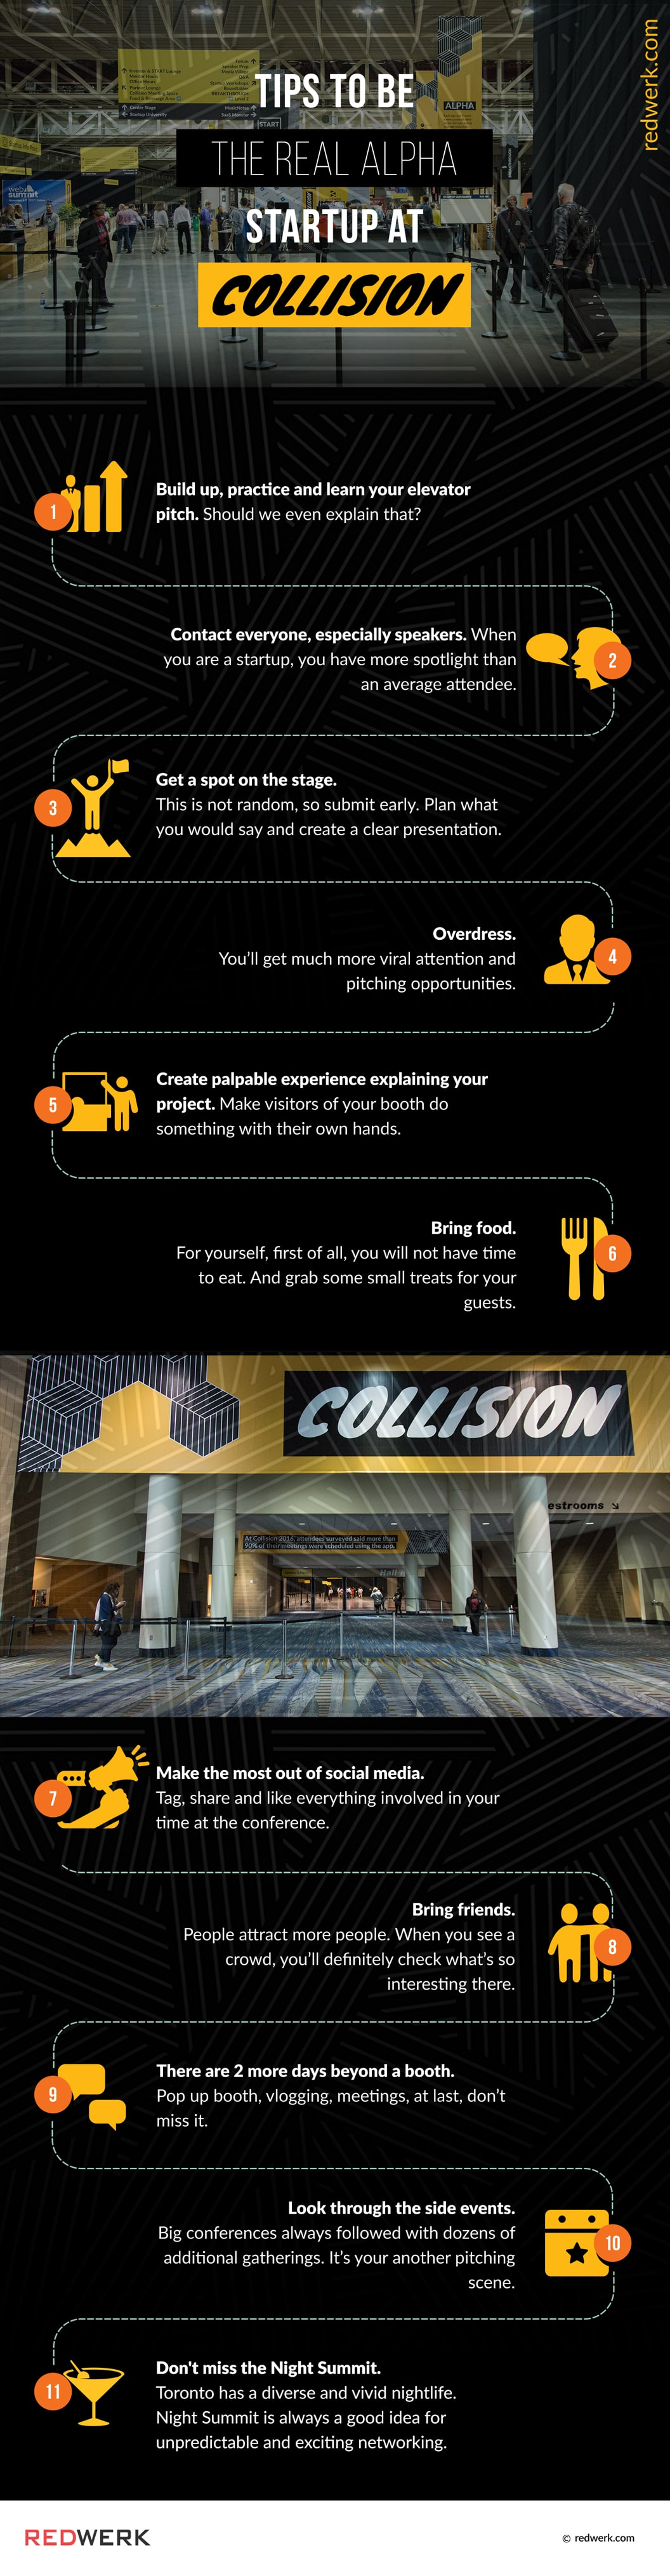 Collision Tech Conference 2019 in Toronto - A Dozen Tips to be the Real Alpha at Collision Conf (Infographic)